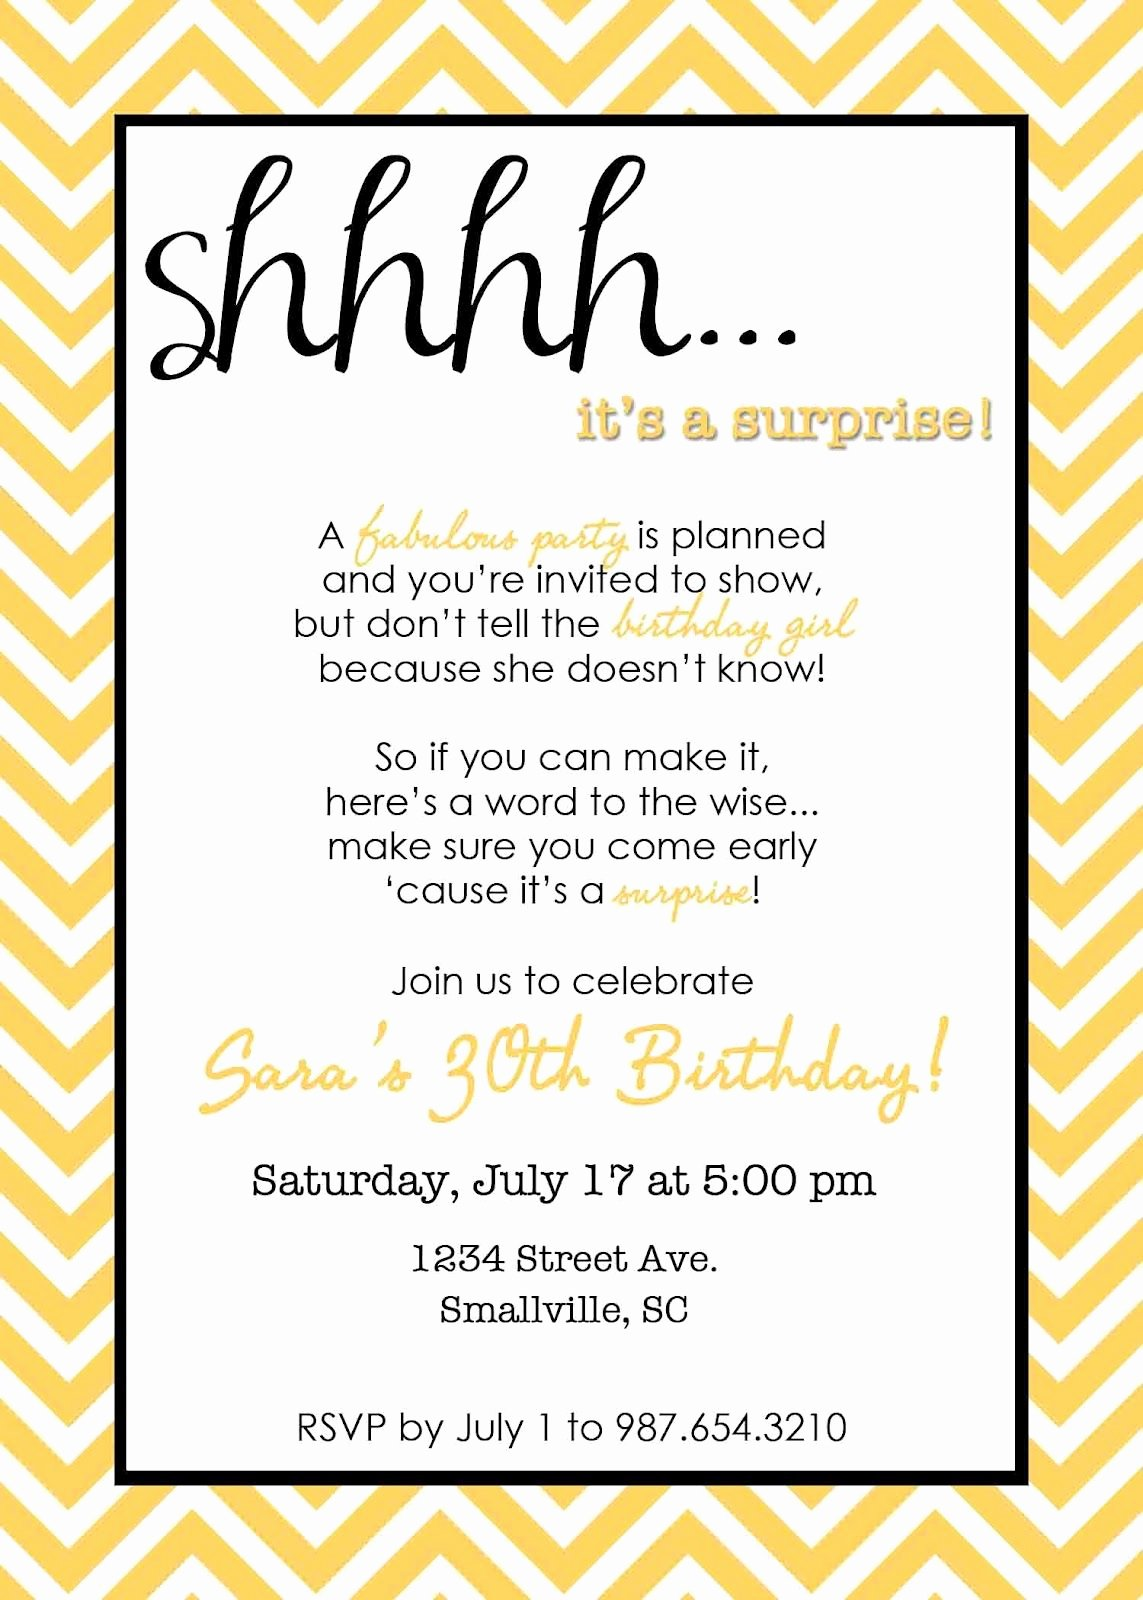 Surprise Party Invitation Templates Best Of Wording for Surprise Birthday Party Invitations In 2019